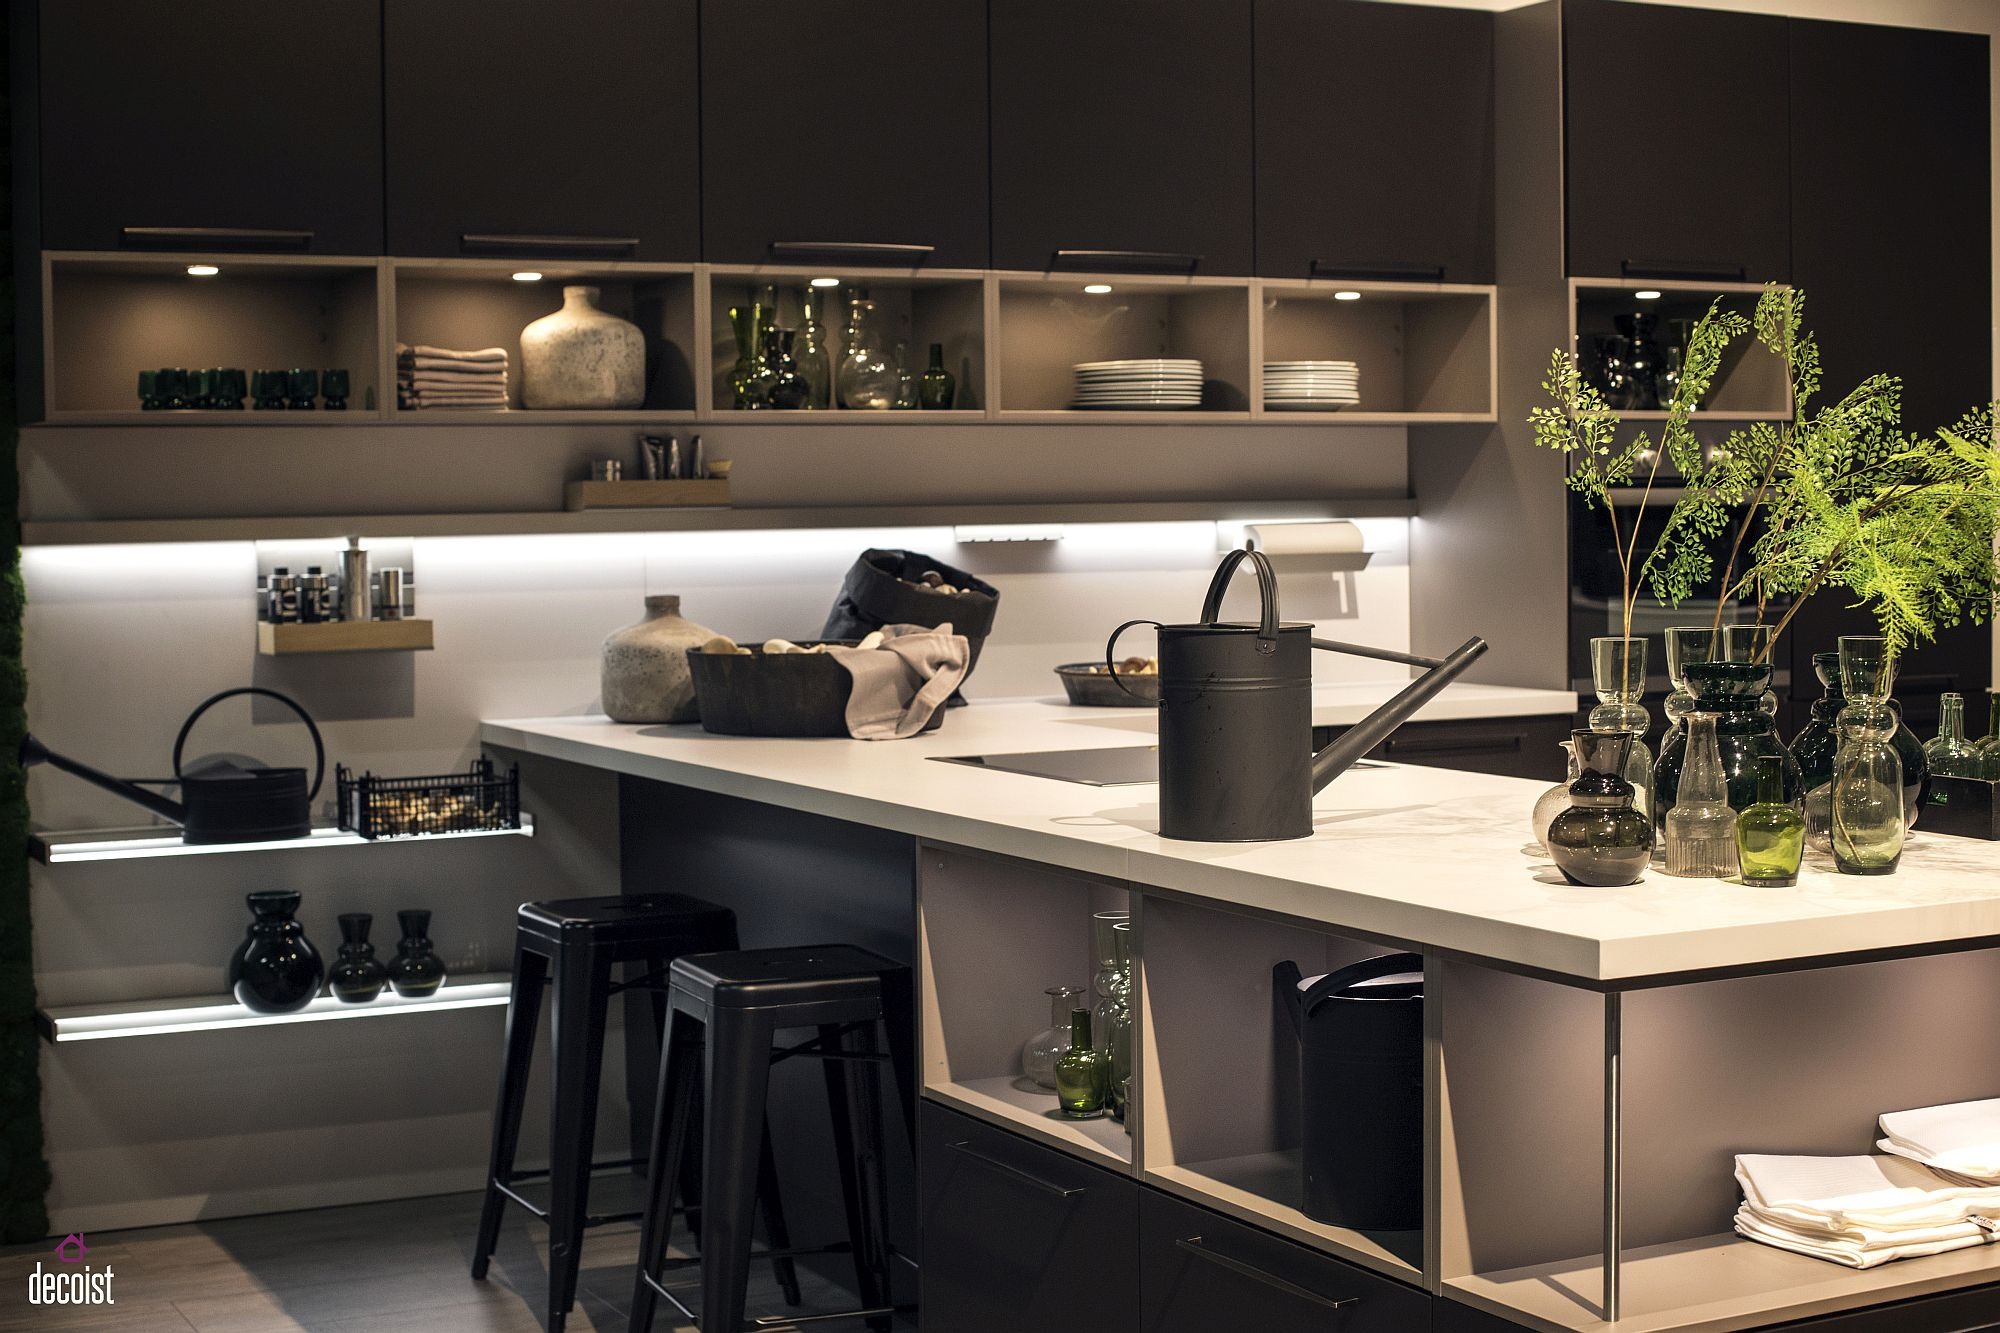 Black kitchen island with white countertop and open shelving